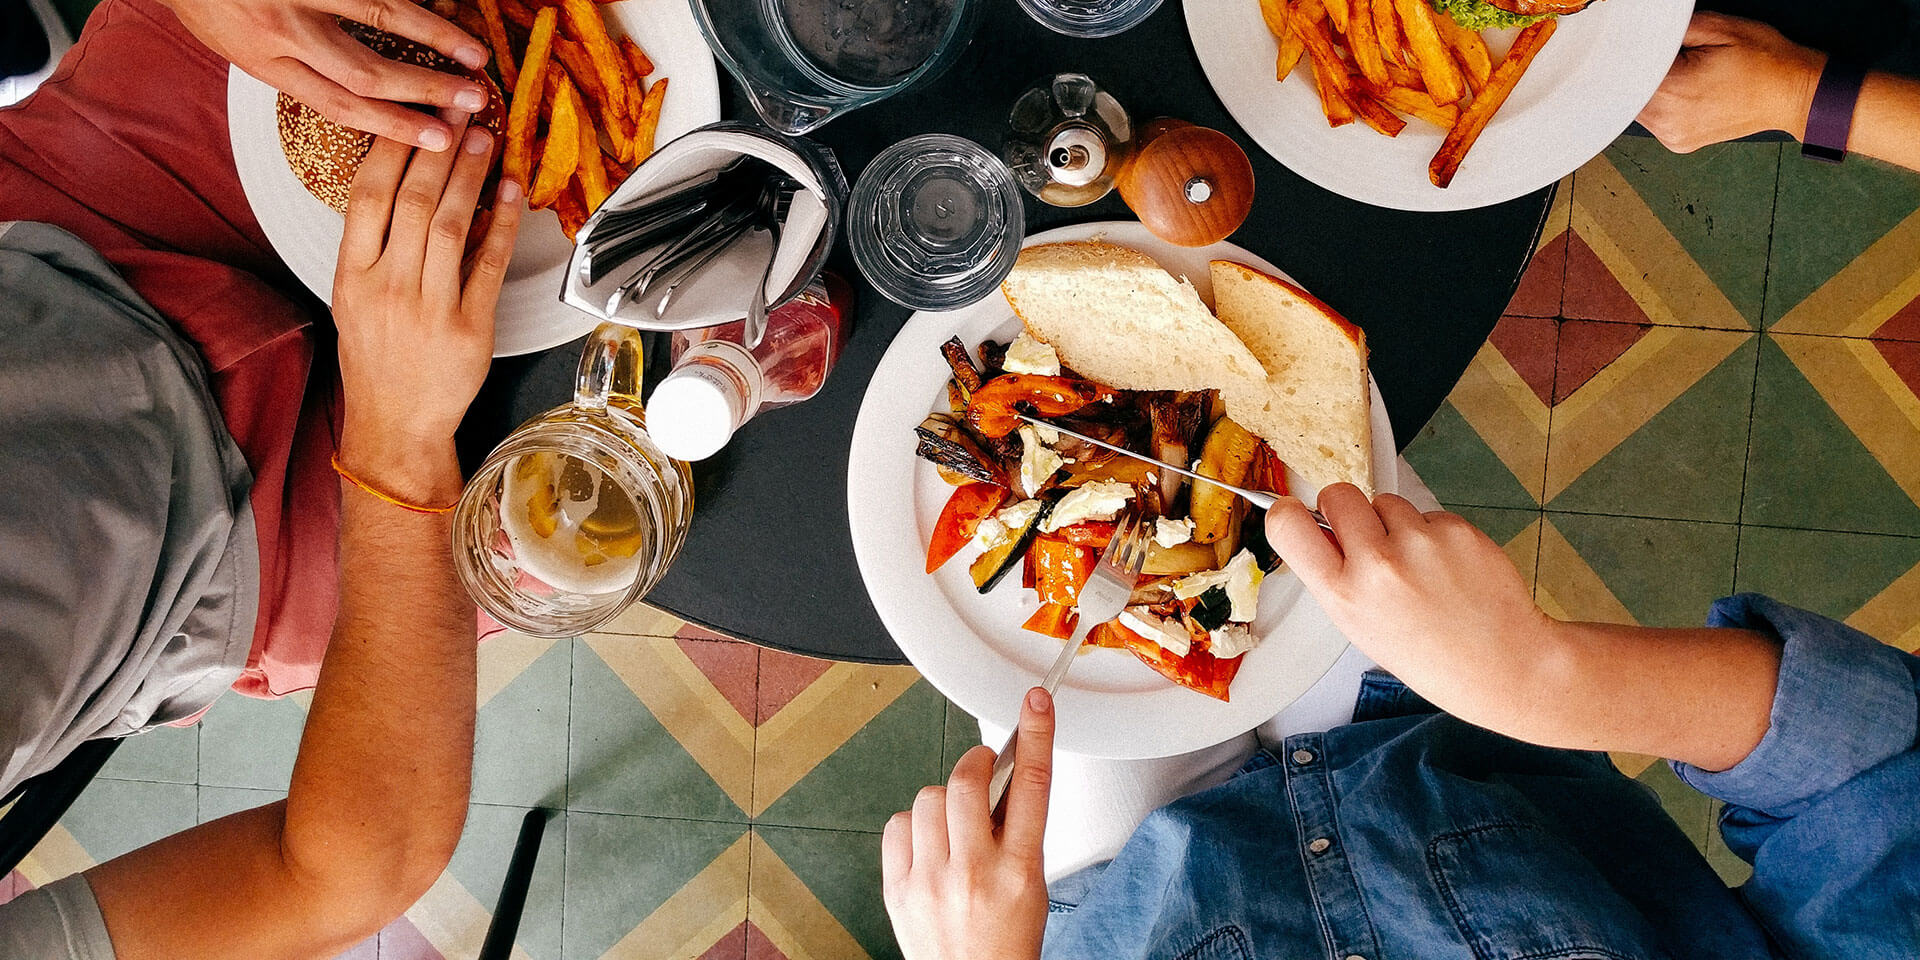 Attract millennial diners with the right technology